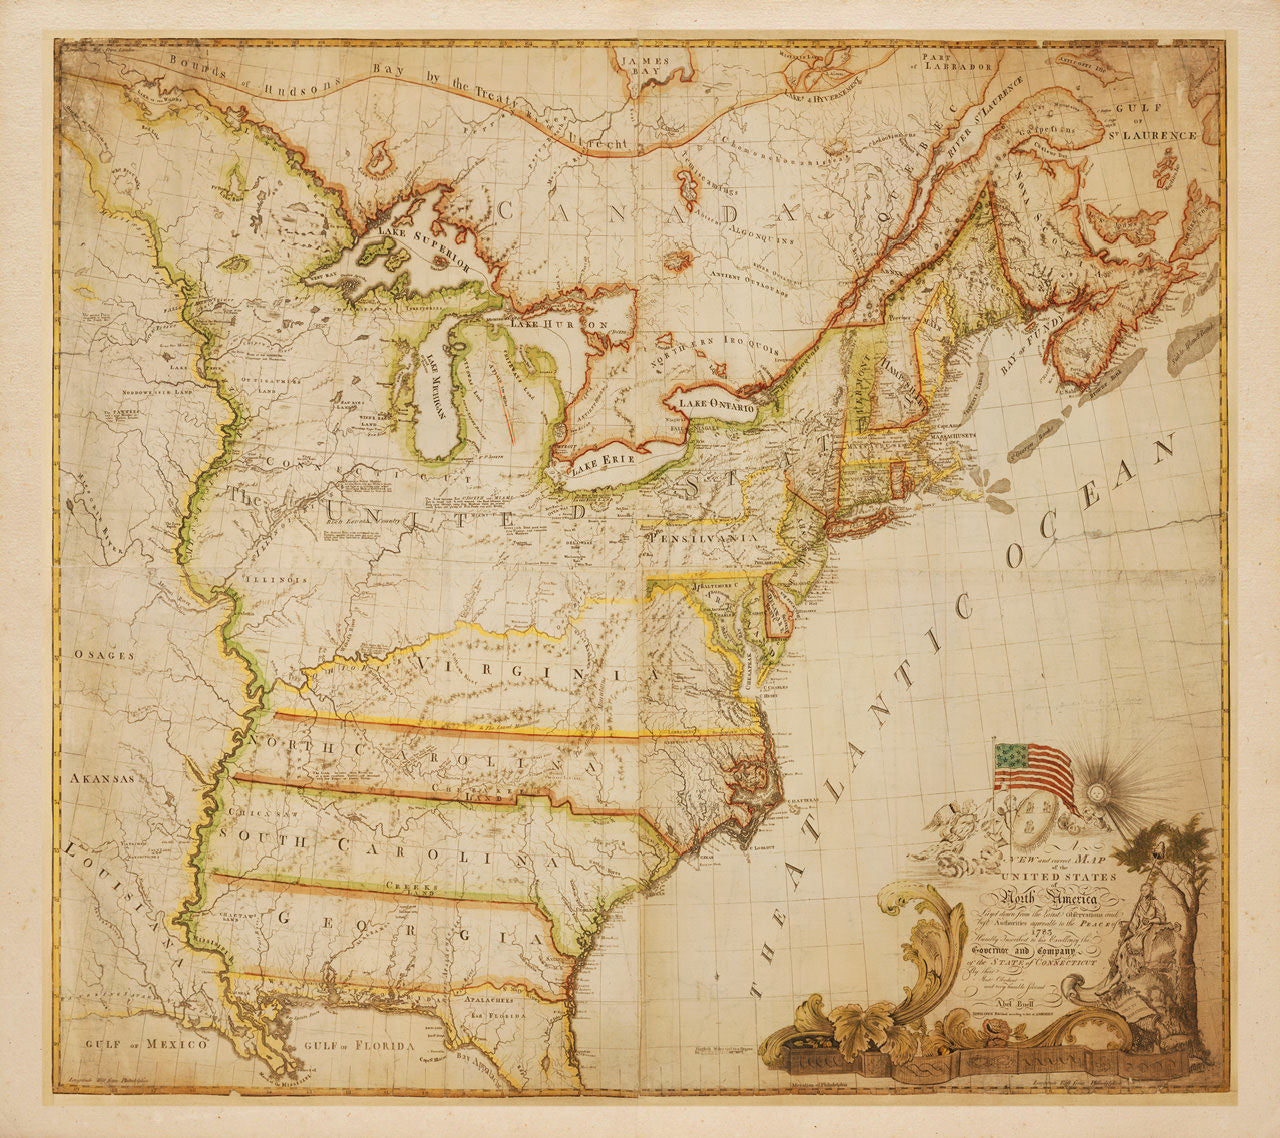 USA, 1784, North America, Abel Buell Map (II)